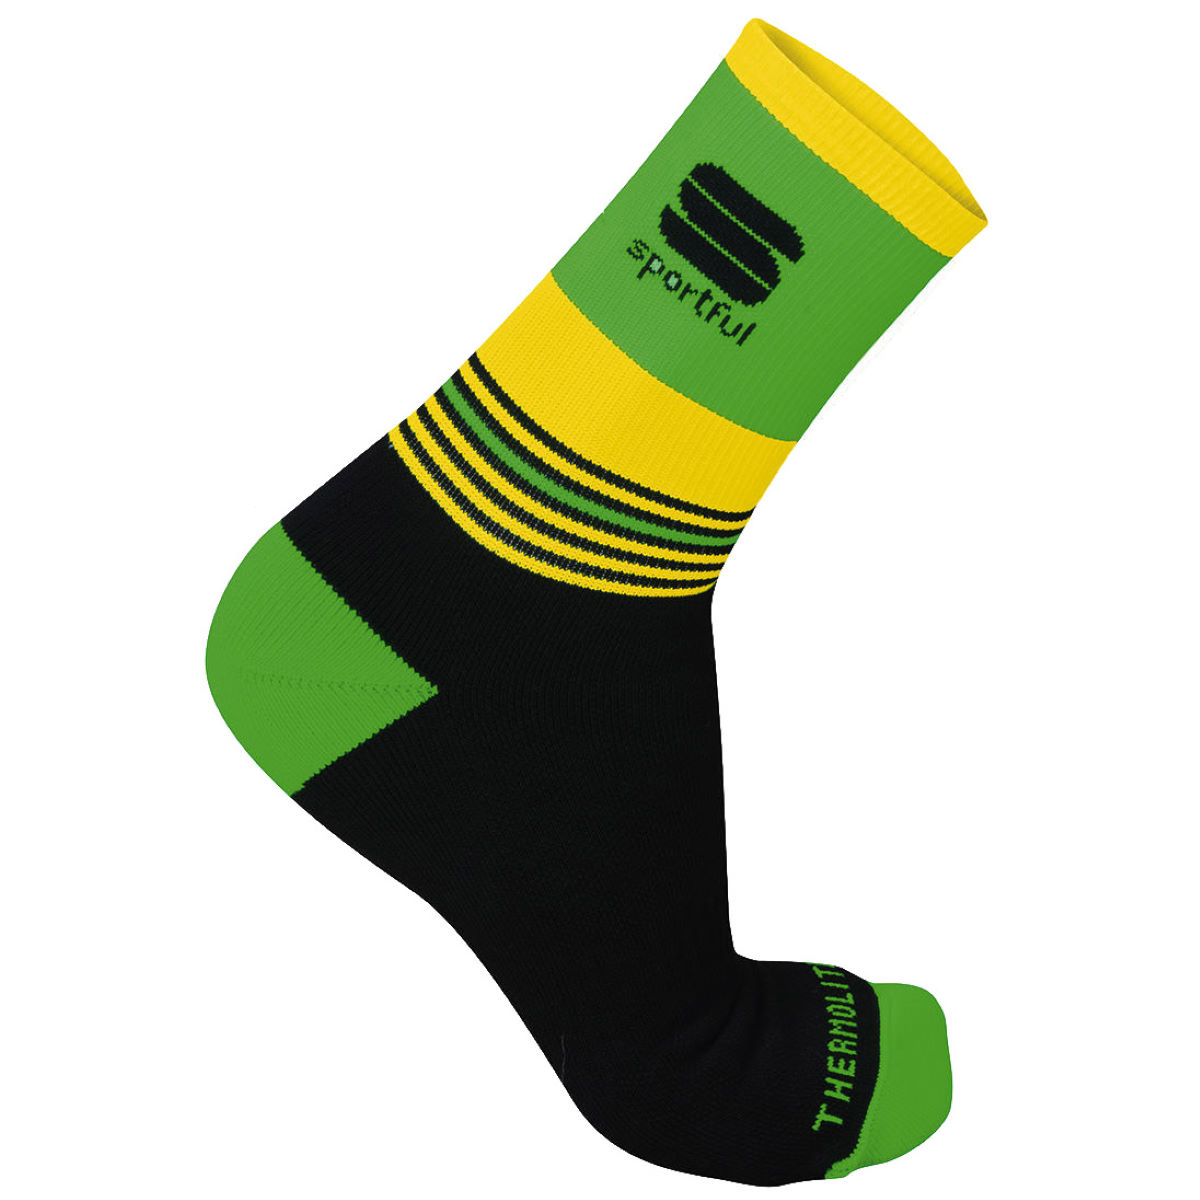 Image of Chaussettes Sportful Arctic 13 - S Black/Green Fluo | Chaussettes